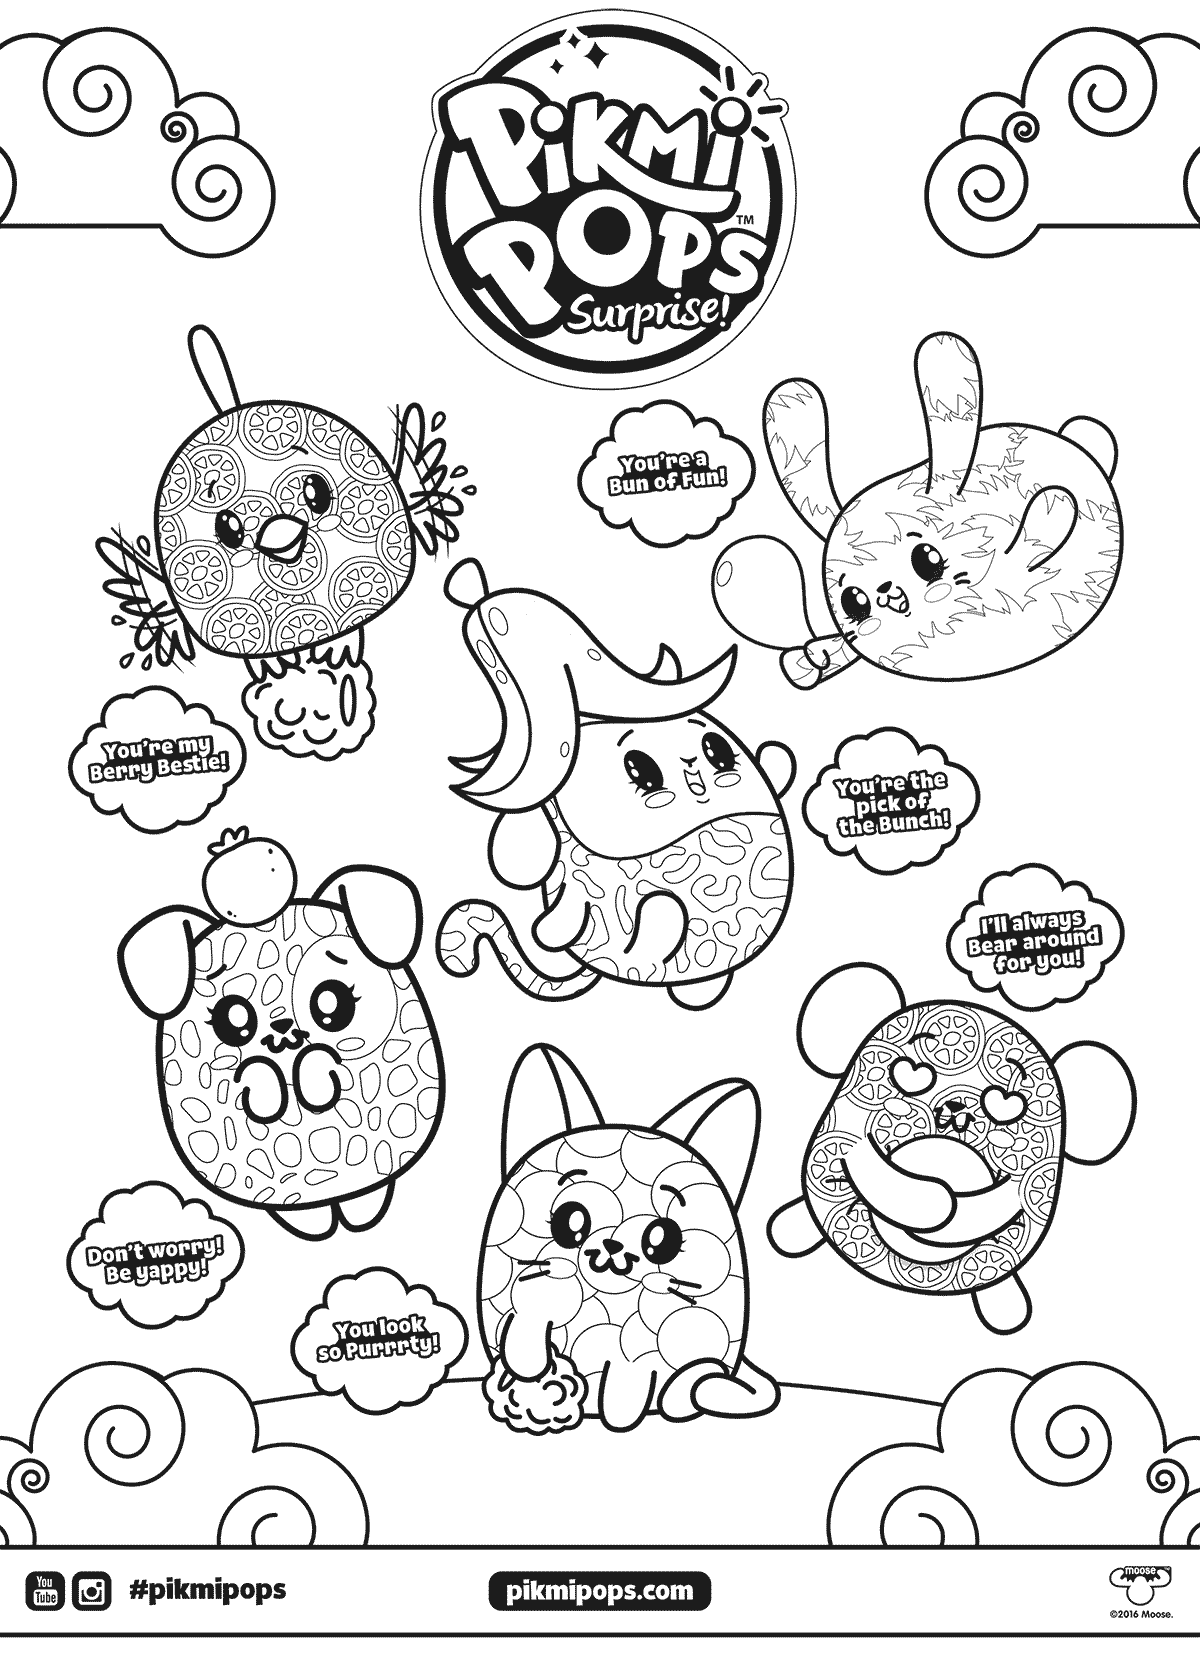 Pikmi Pops Coloring Pages Best Coloring Pages For Kids Cute Coloring Pages Coloring Pages Coloring Pages For Kids [ 1674 x 1200 Pixel ]